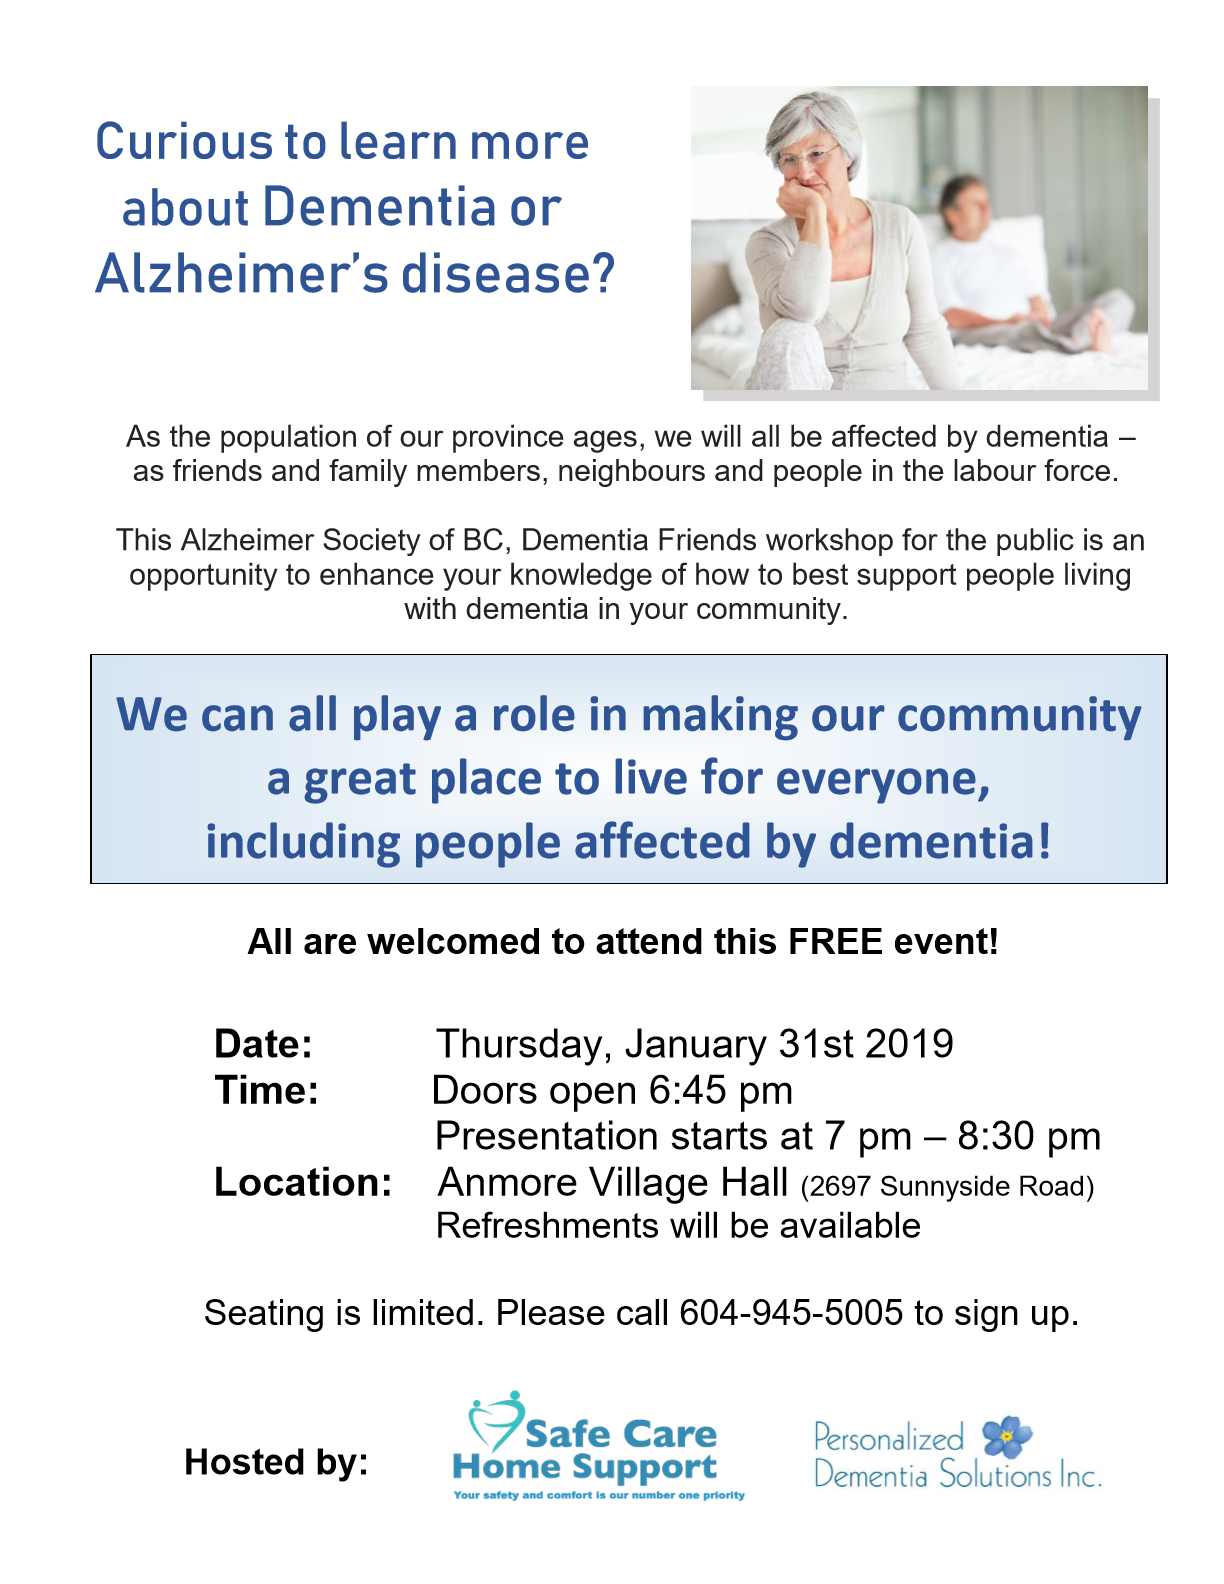 2019-01-31 Final Poster for Dementia Presentation Jan 31 2019 Anmore